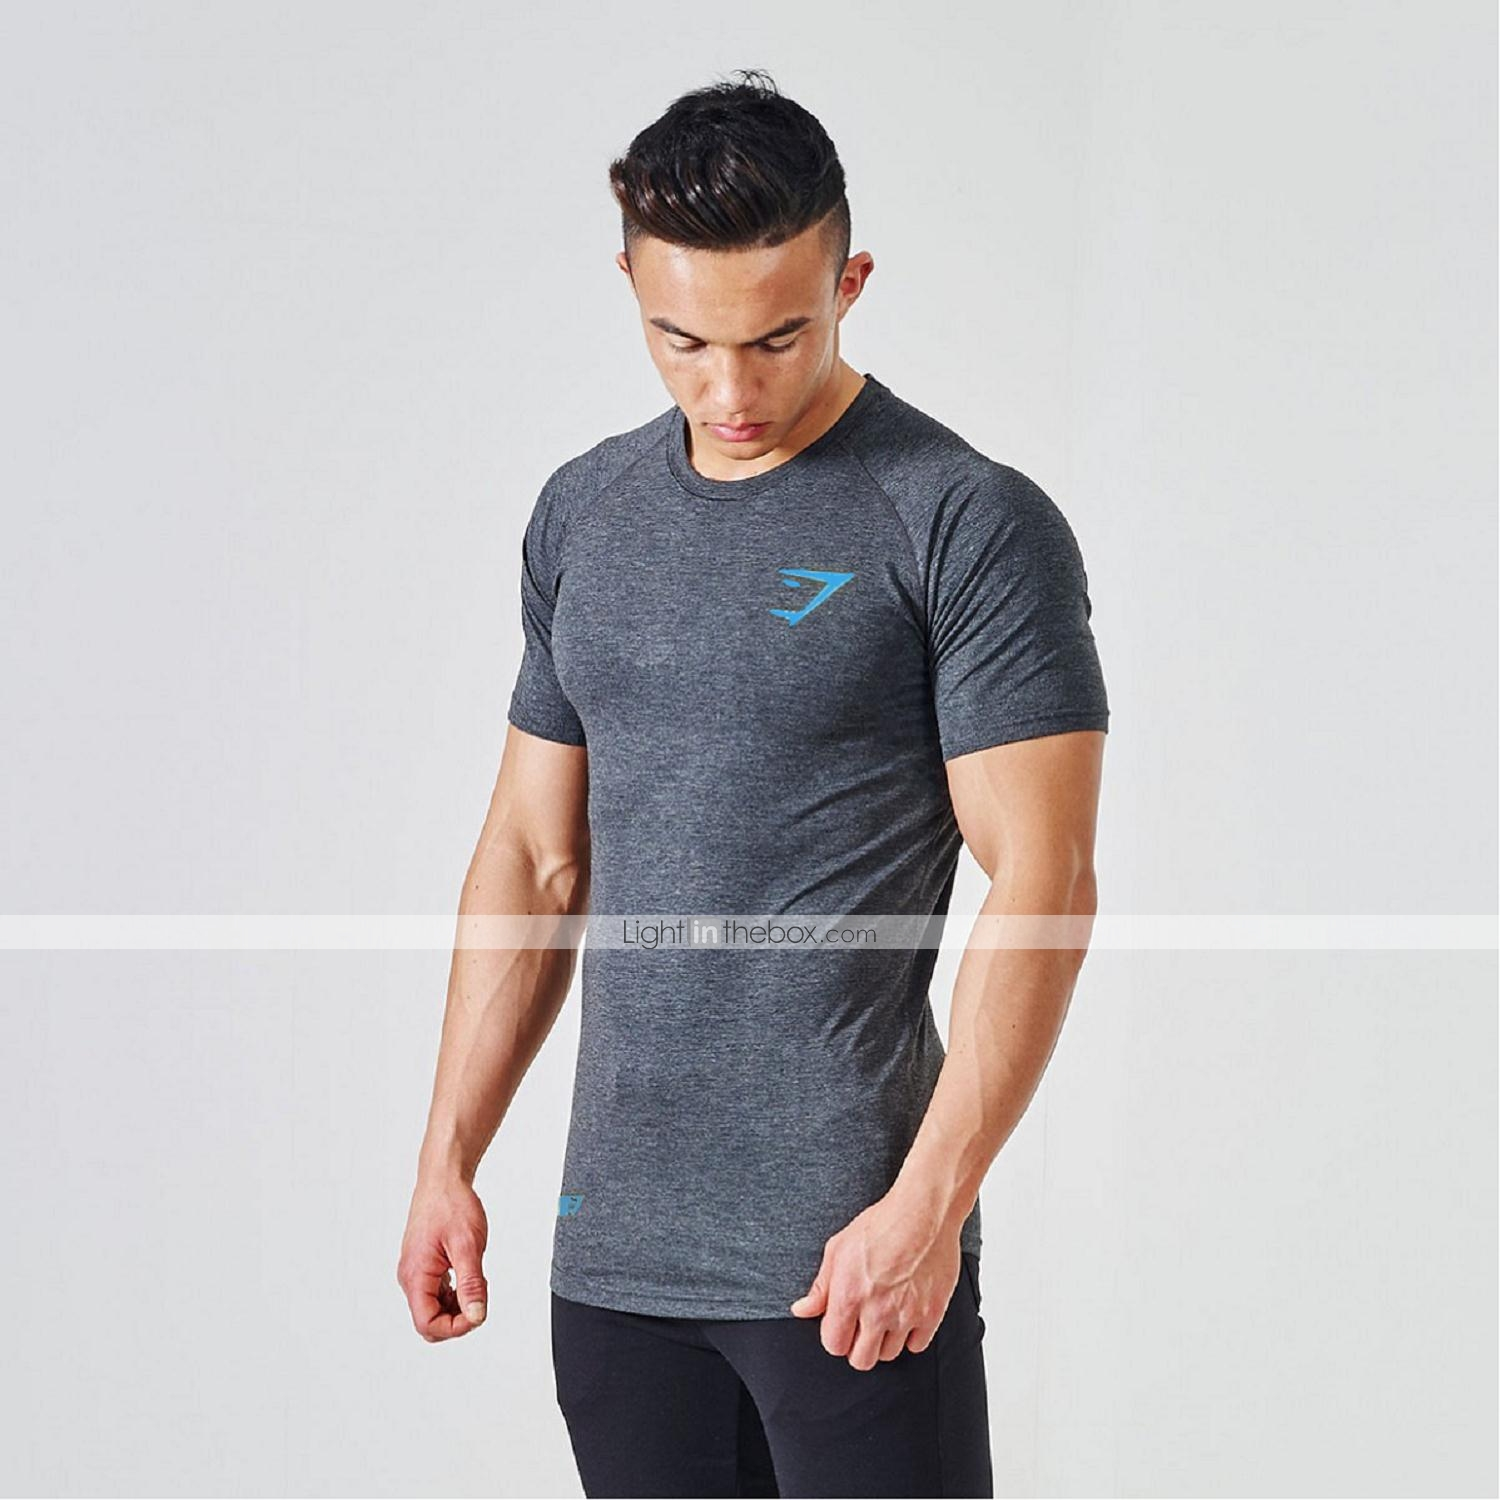 Outdoor sports casual cycling riding gym shirt running for Lightweight breathable long sleeve shirts